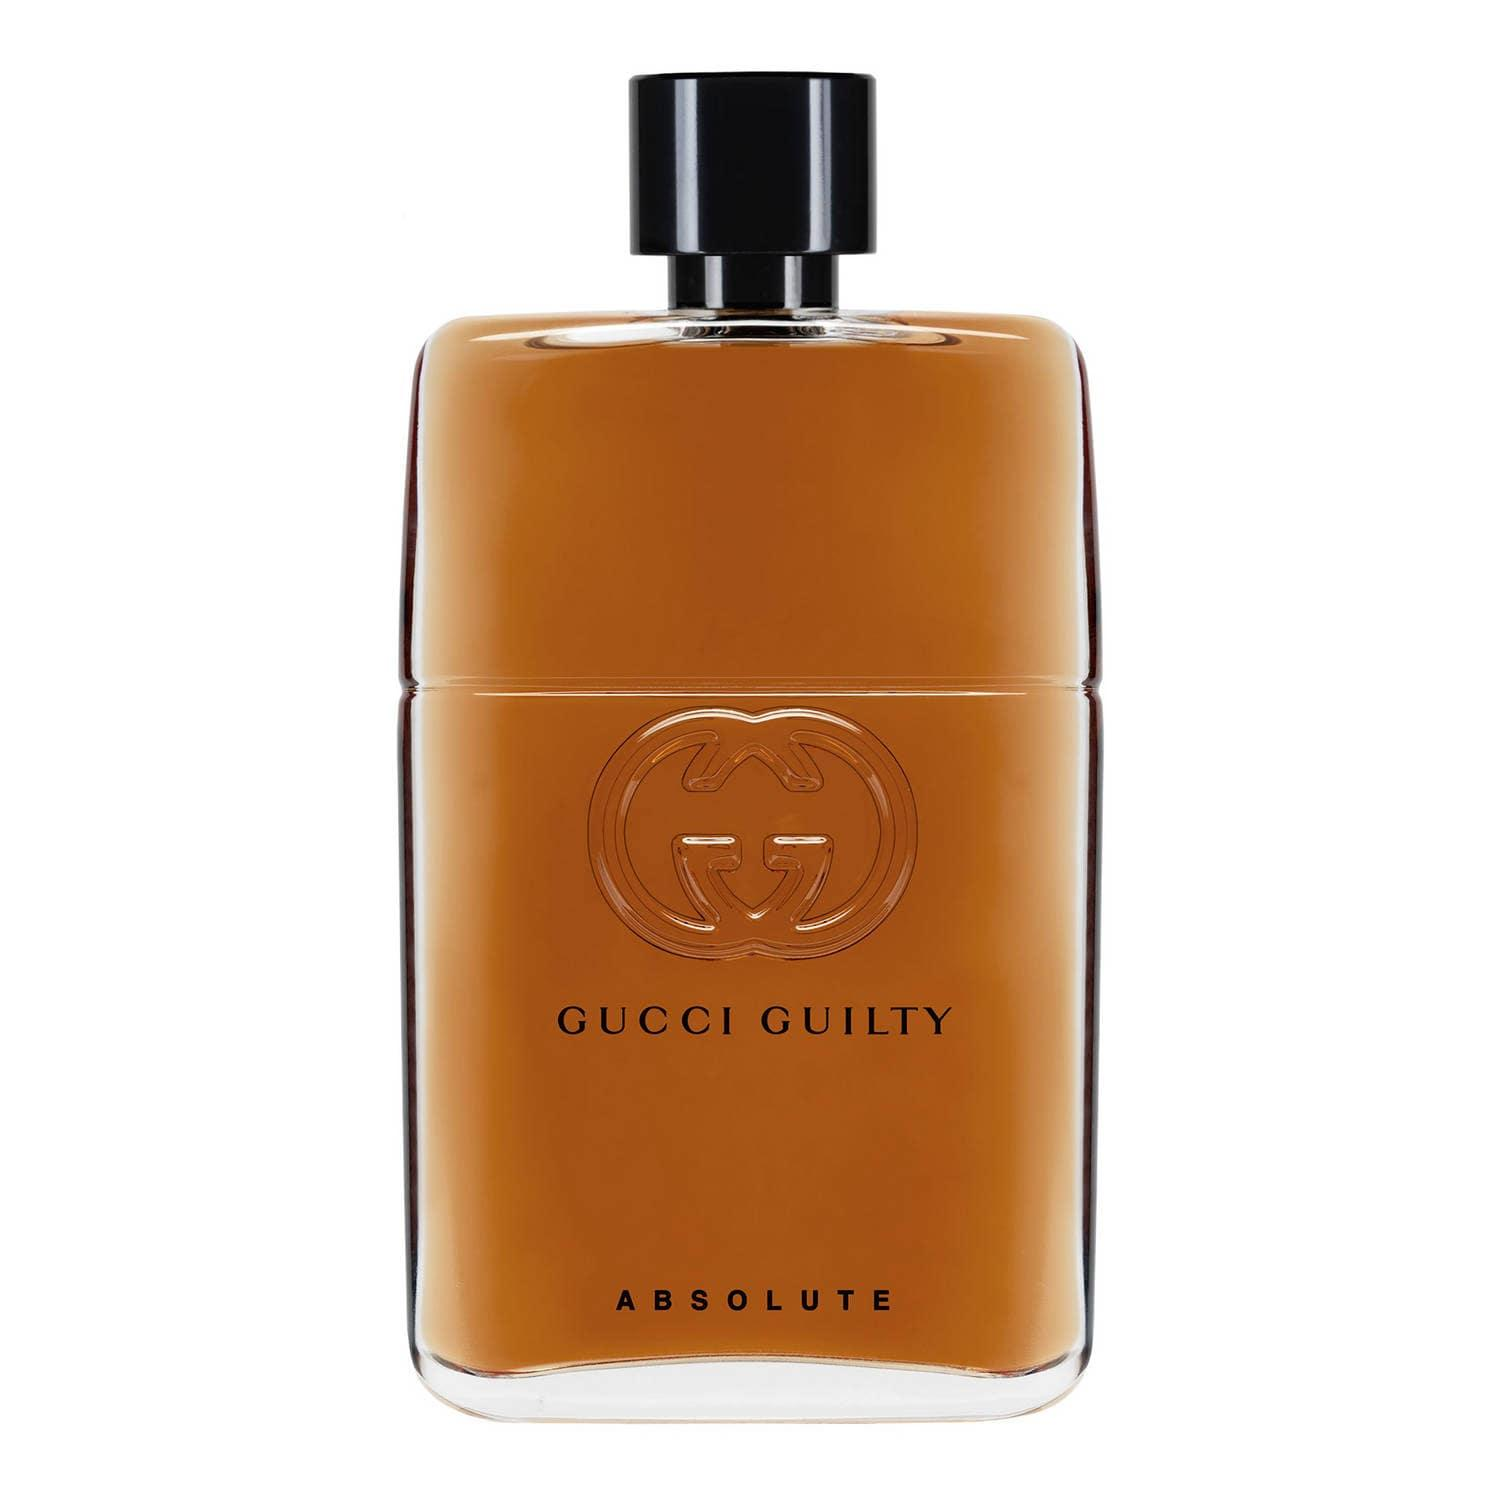 Gucci Guilty Absolute Pour Homme For Men Eau De Parfum 90ML